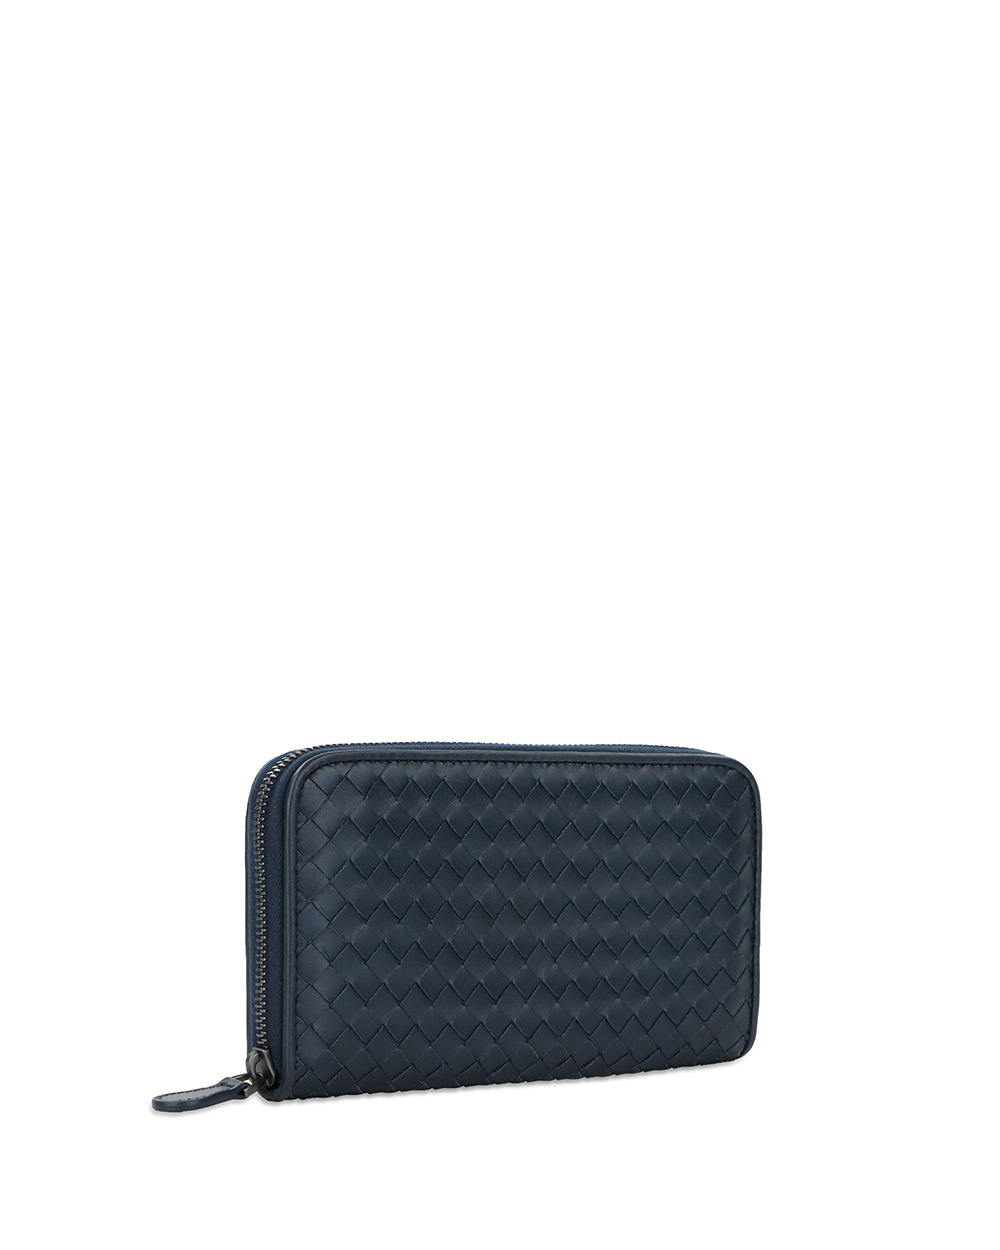 Woven Leather Long Wallet 2